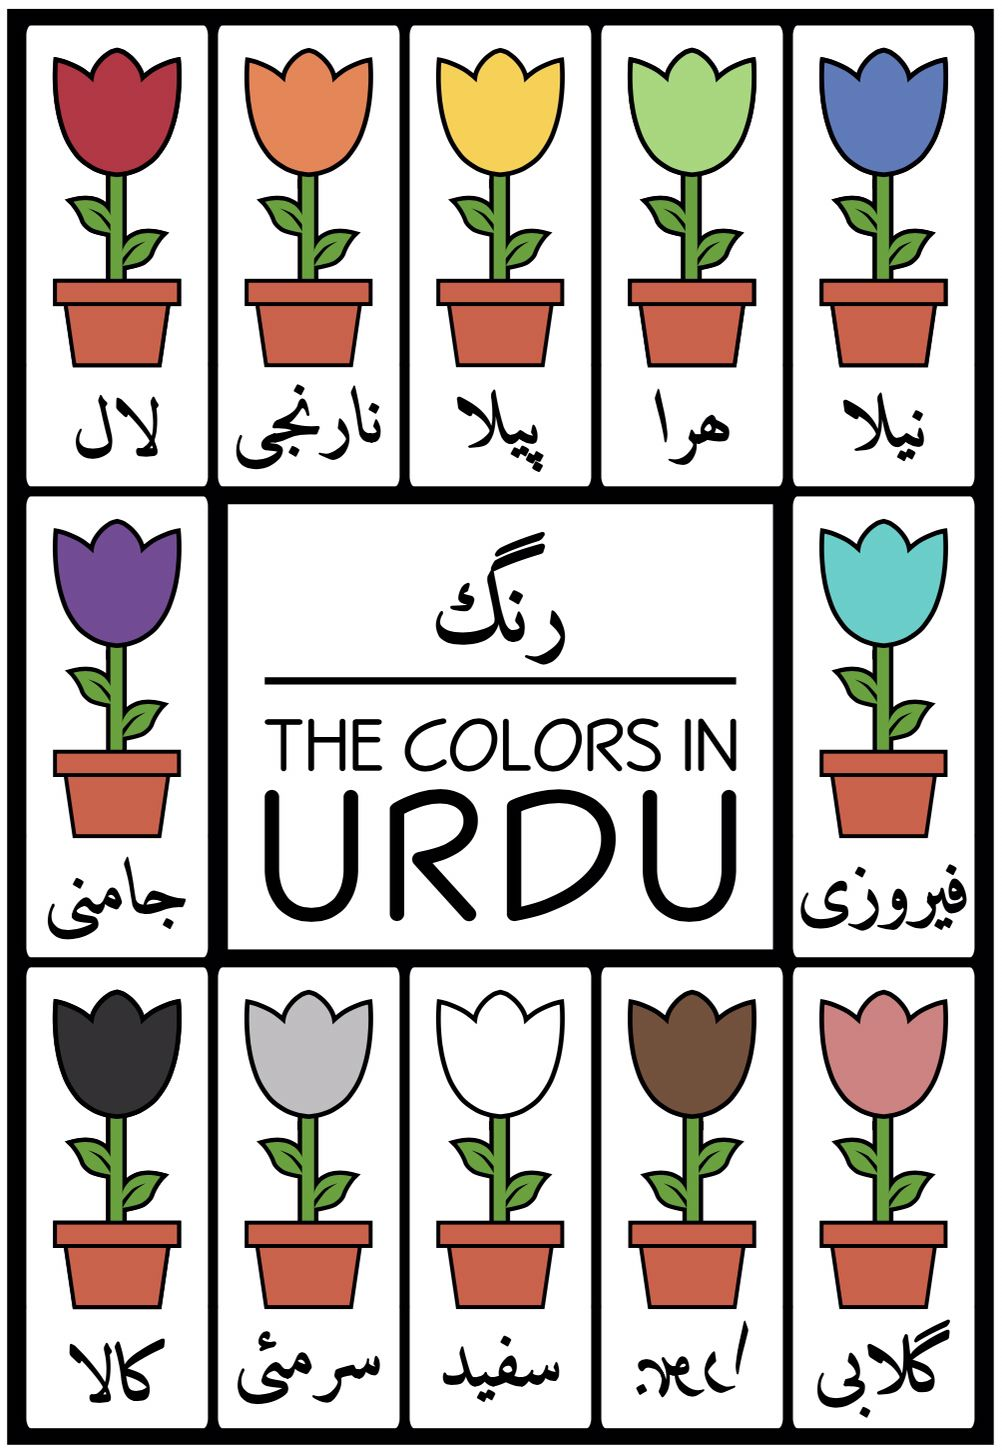 Urdu Colors Flower Printables High Resolution Persian Language Korean Colors Learn Portuguese